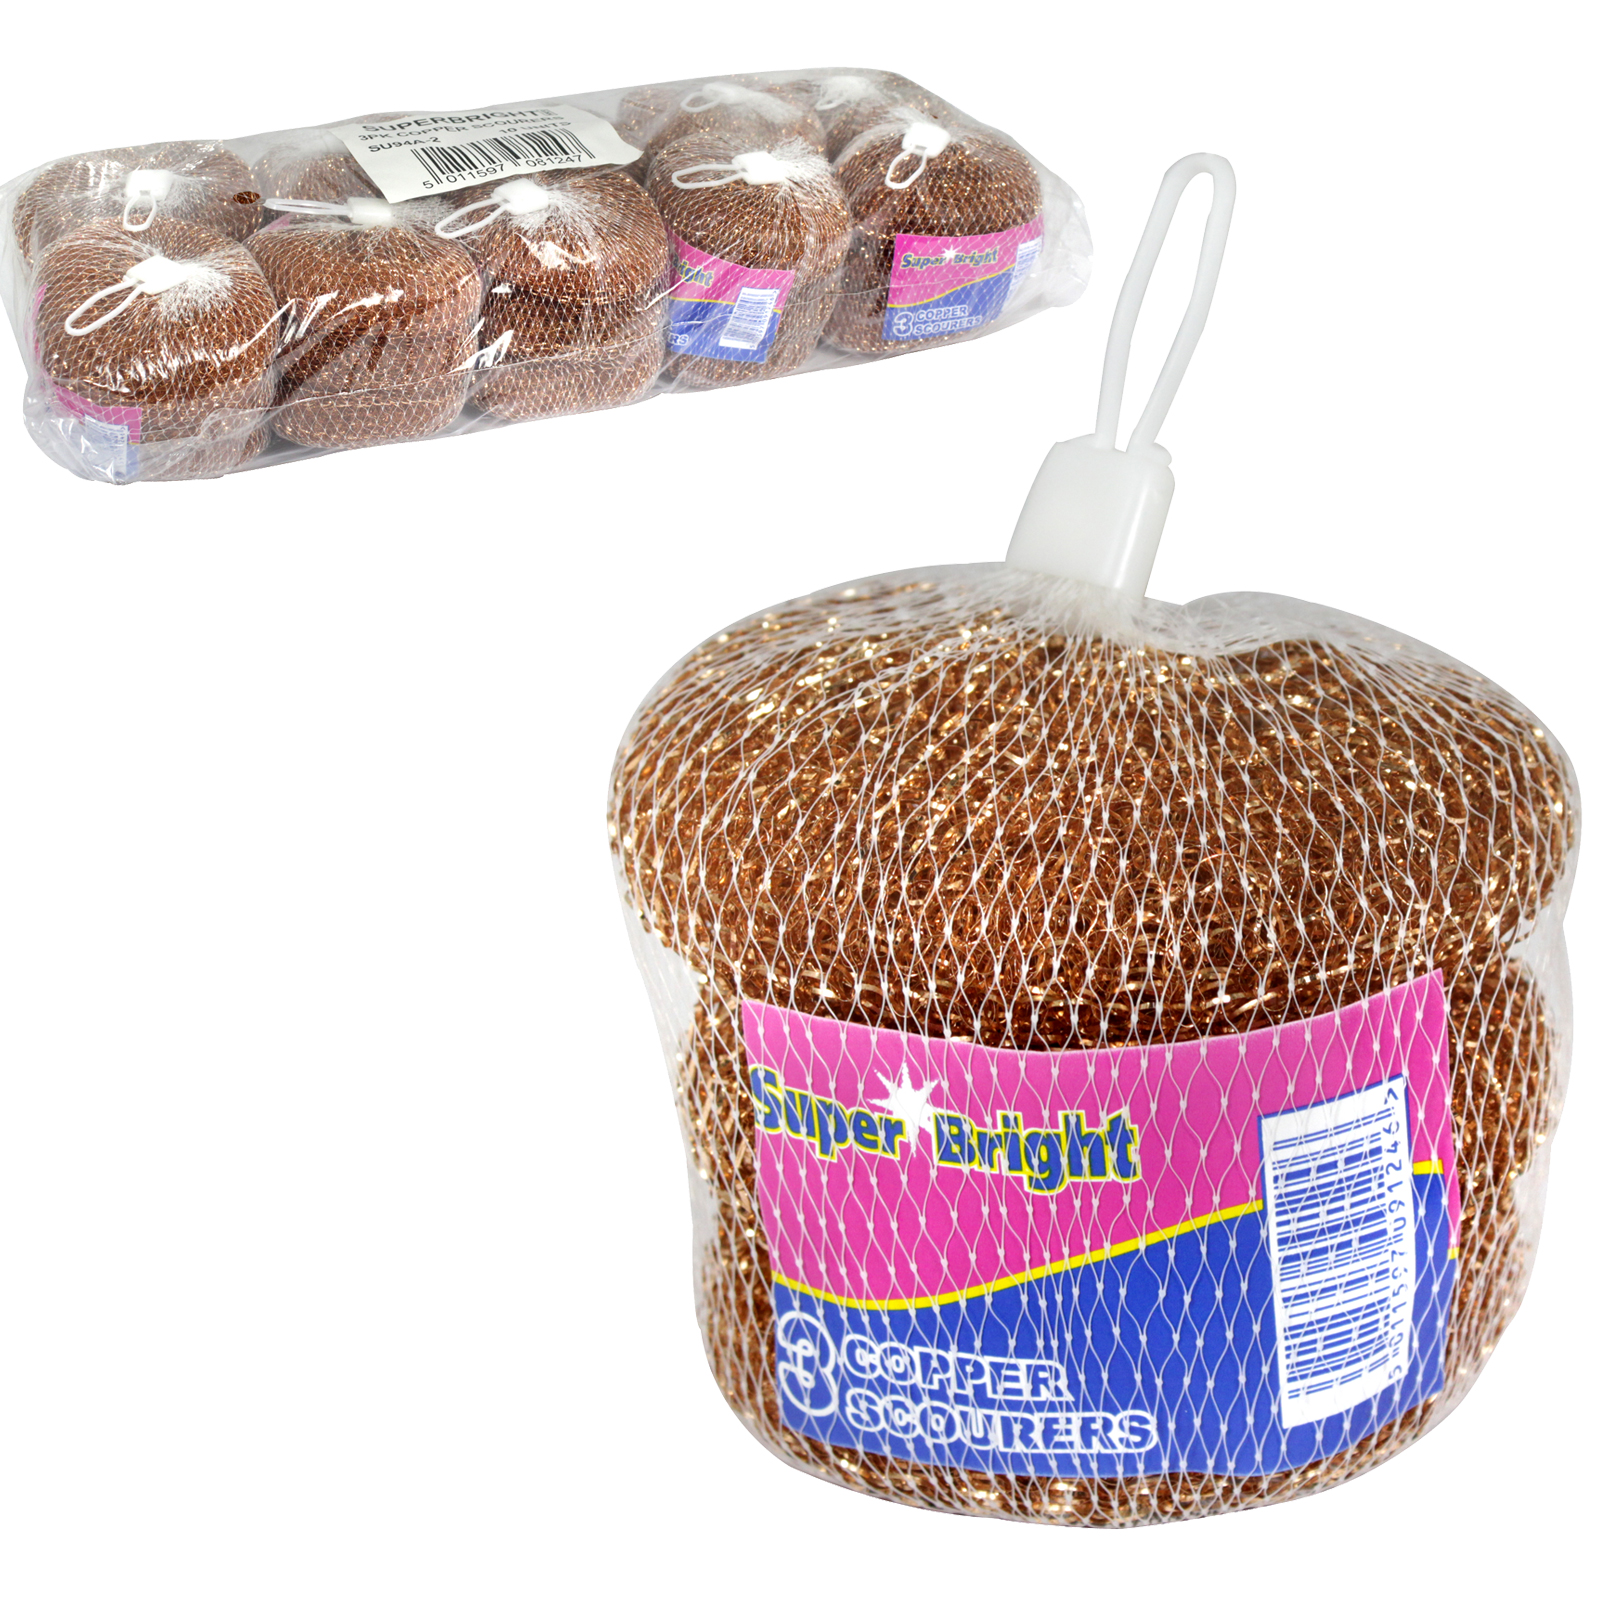 SUPERBRIGHT COPPER PLATED SCOURER 3PK X10